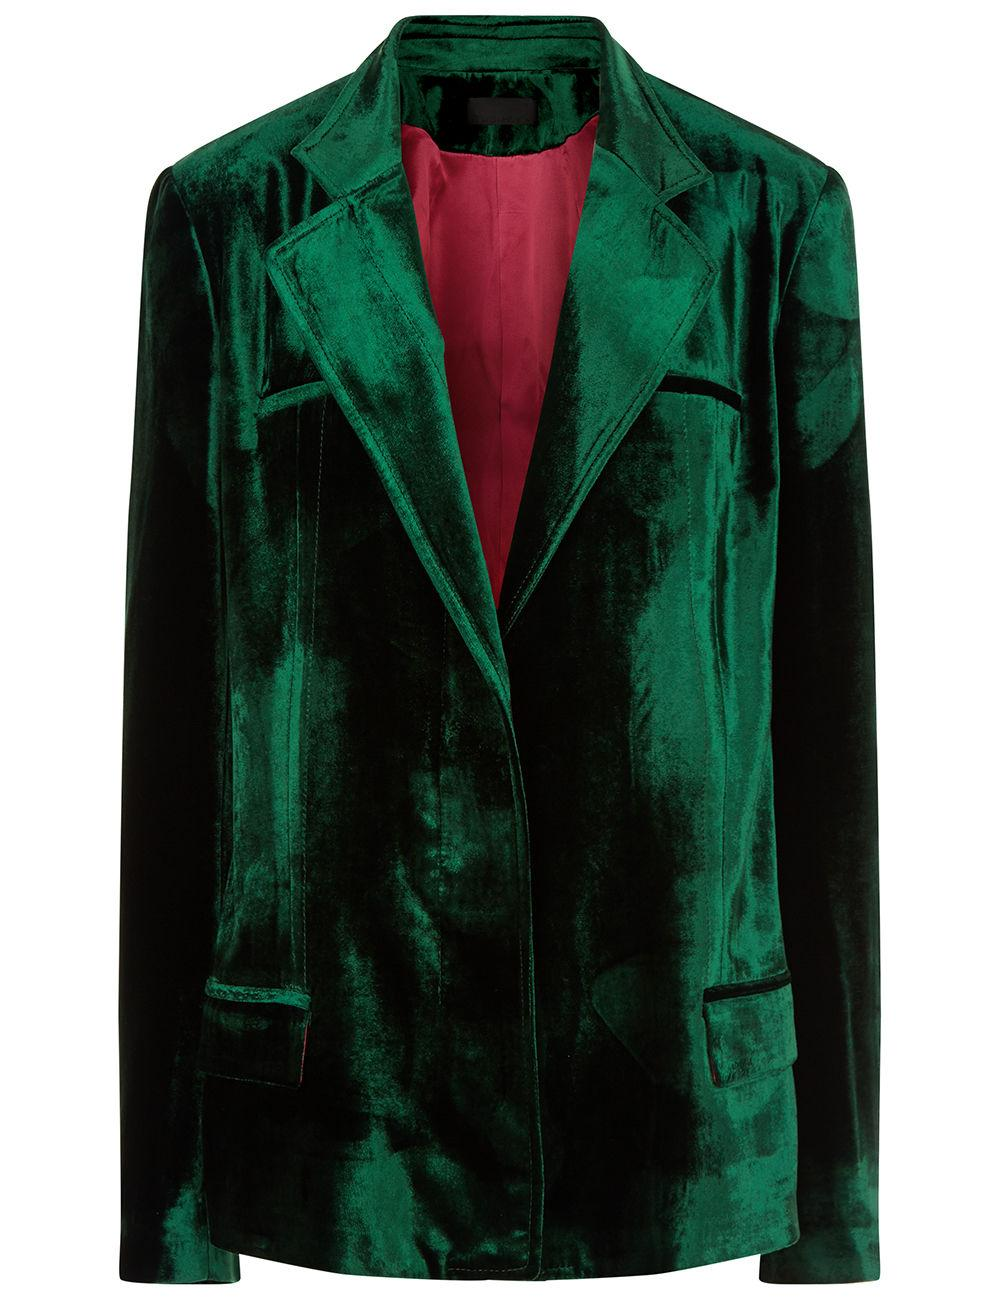 Haider Ackermann Emerald Velvet Single Breasted Blazer In